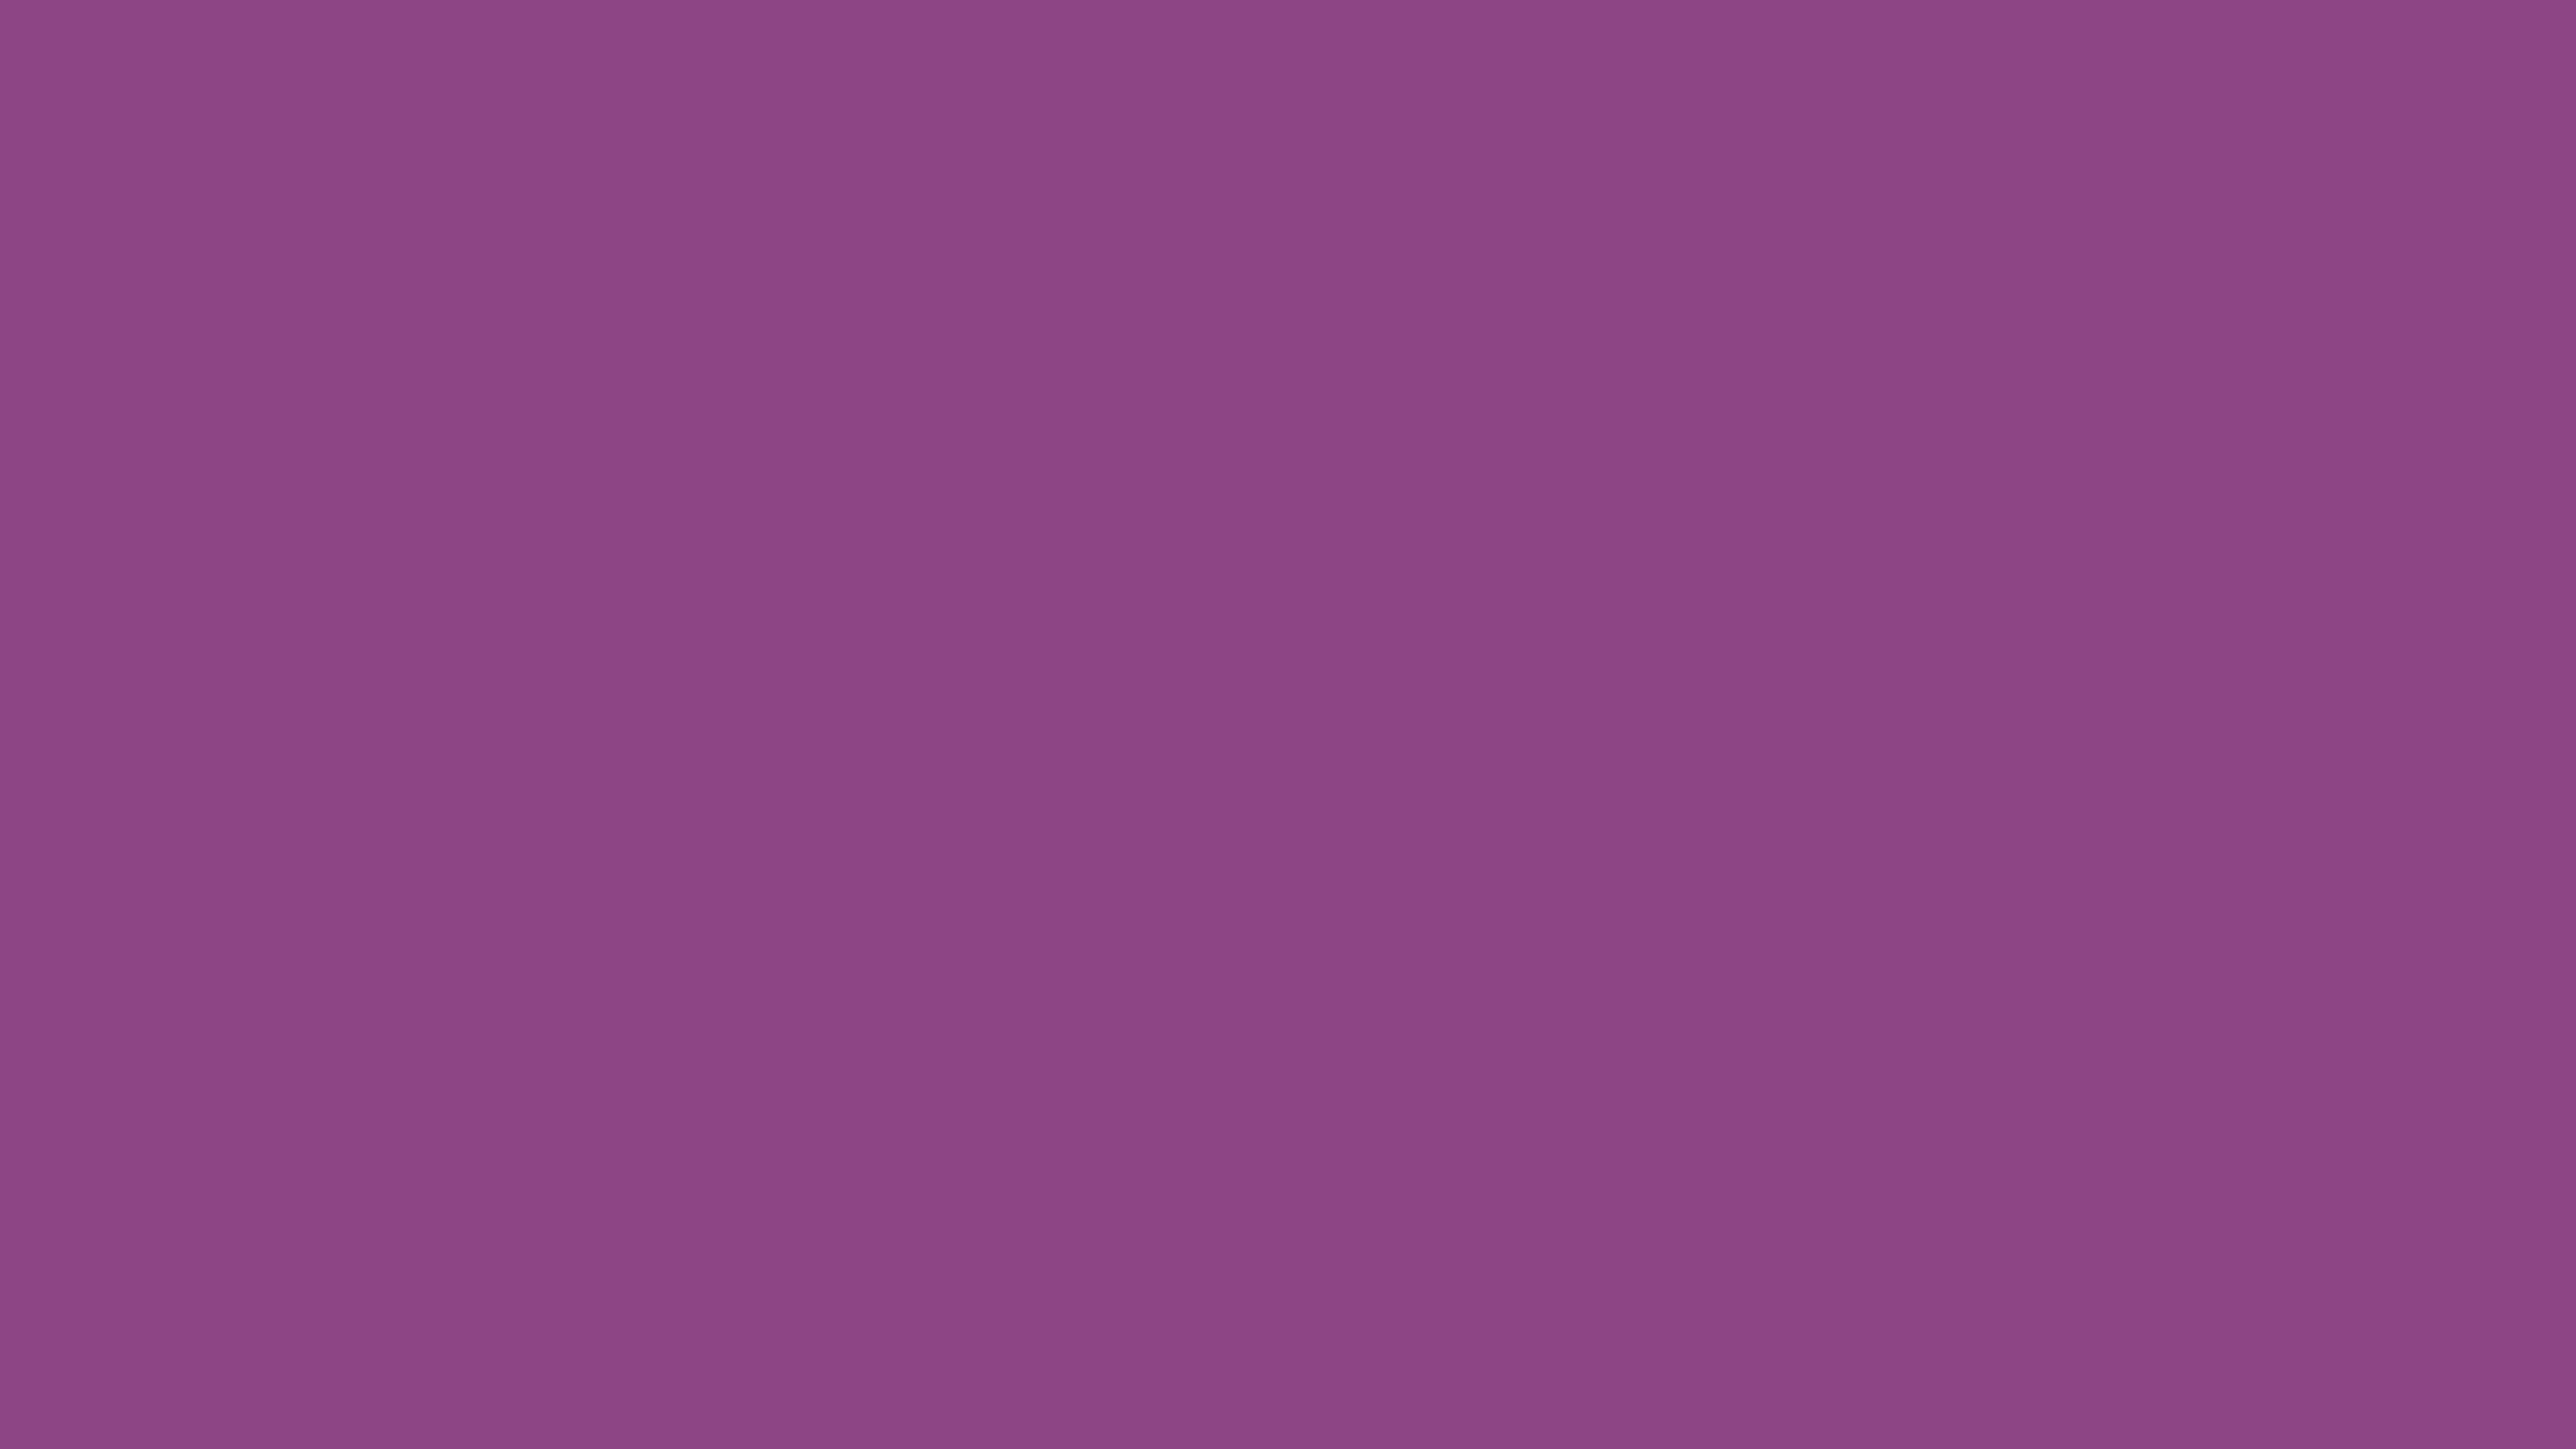 7680x4320 Plum Traditional Solid Color Background